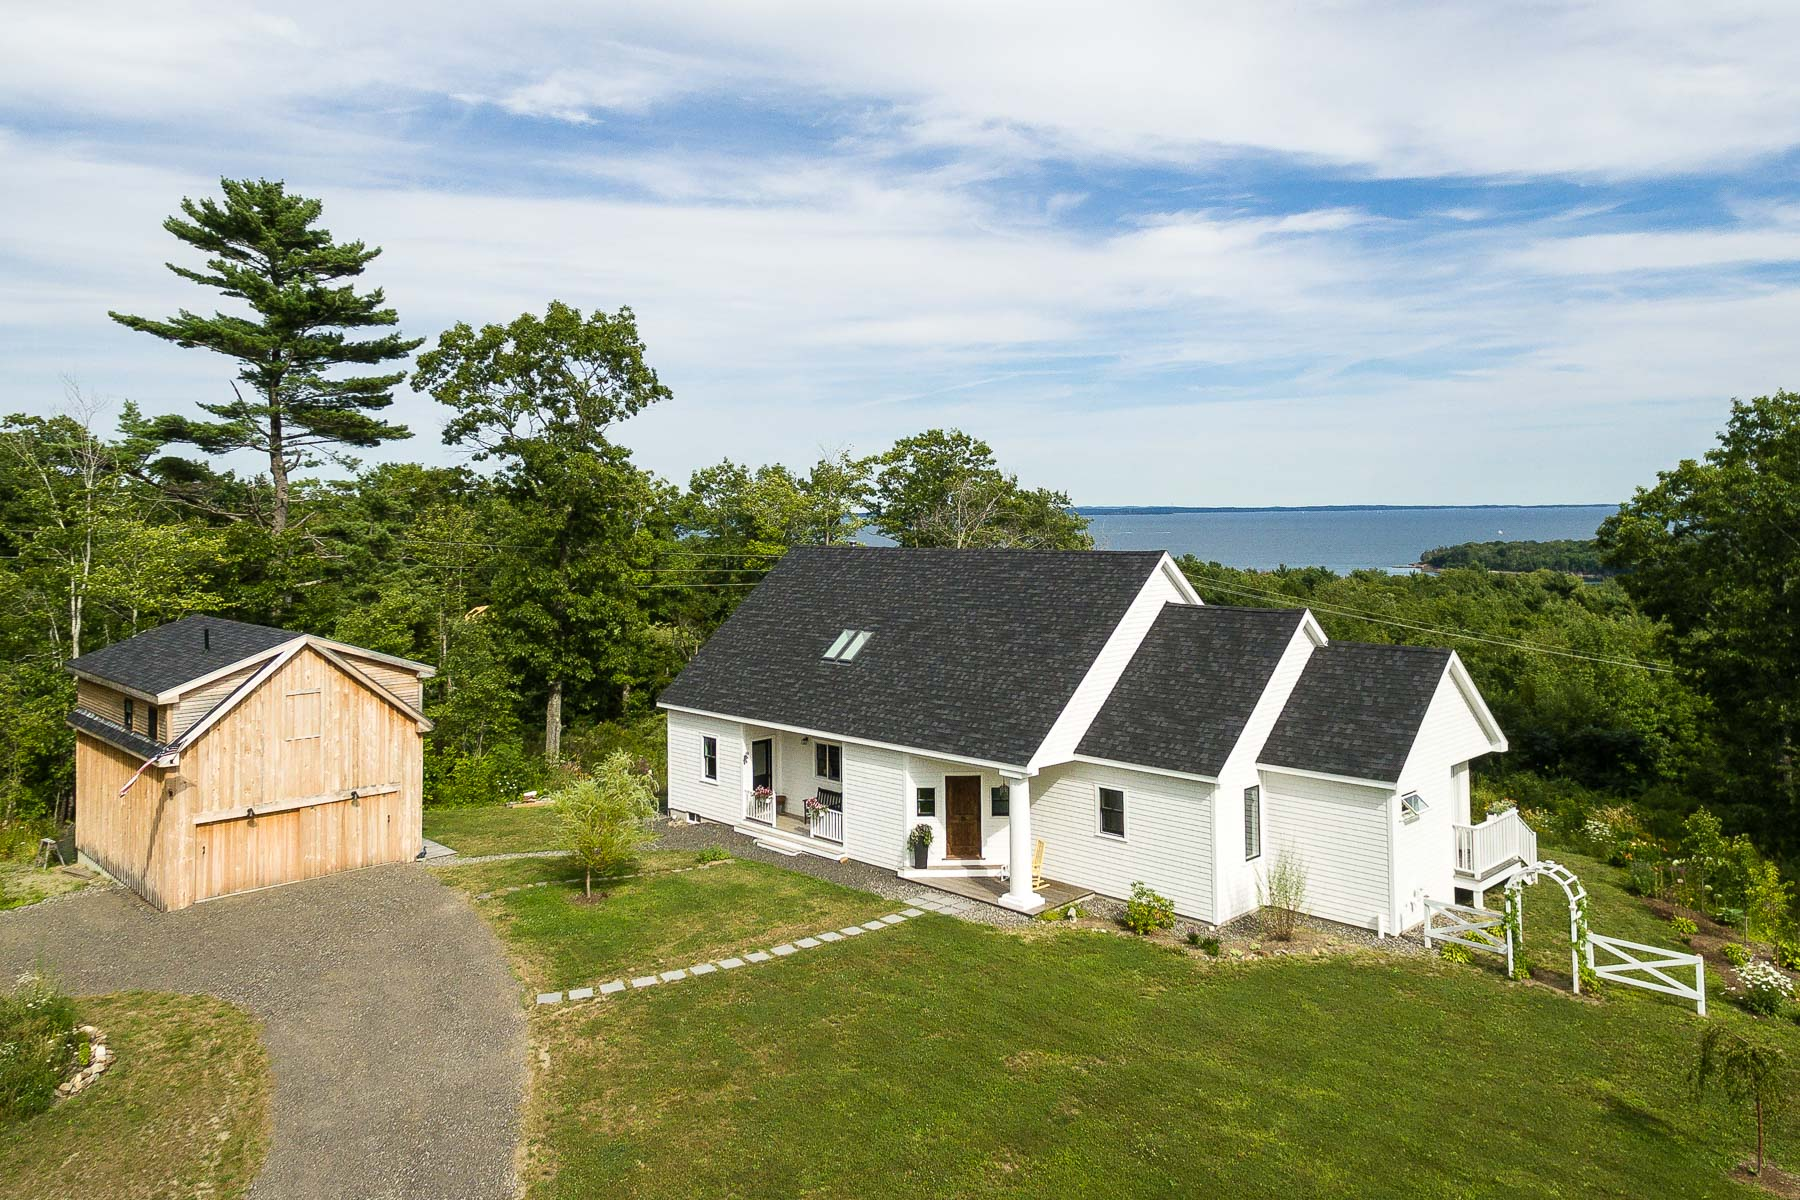 29 Terrier Cir, Rockport, ME 04856